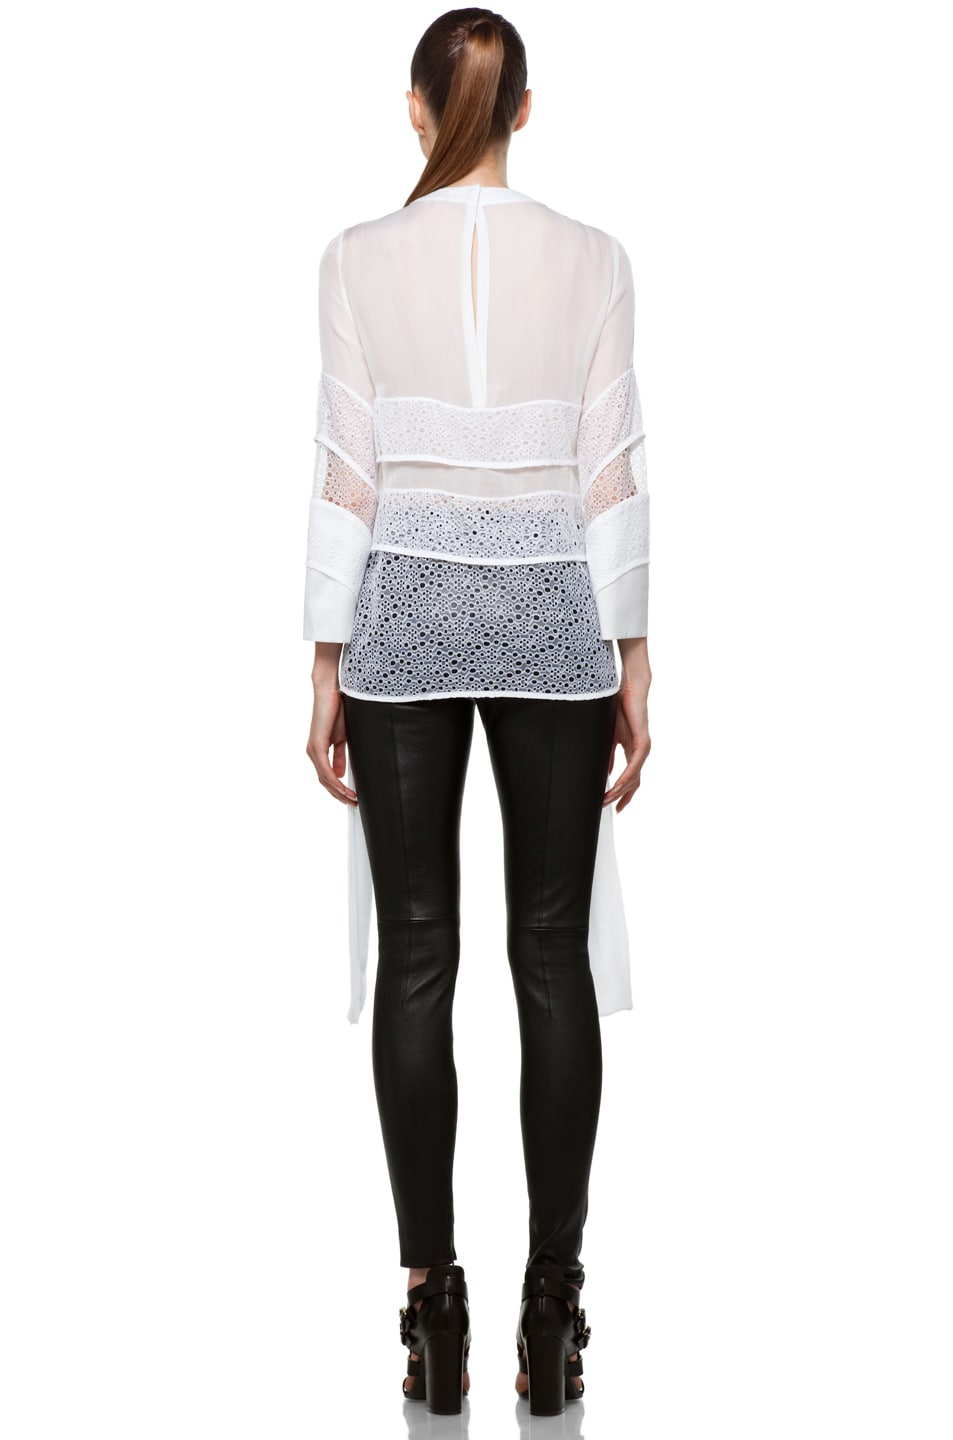 Image 4 of GIVENCHY Tiered Chiffon Lace Top with Tails in White